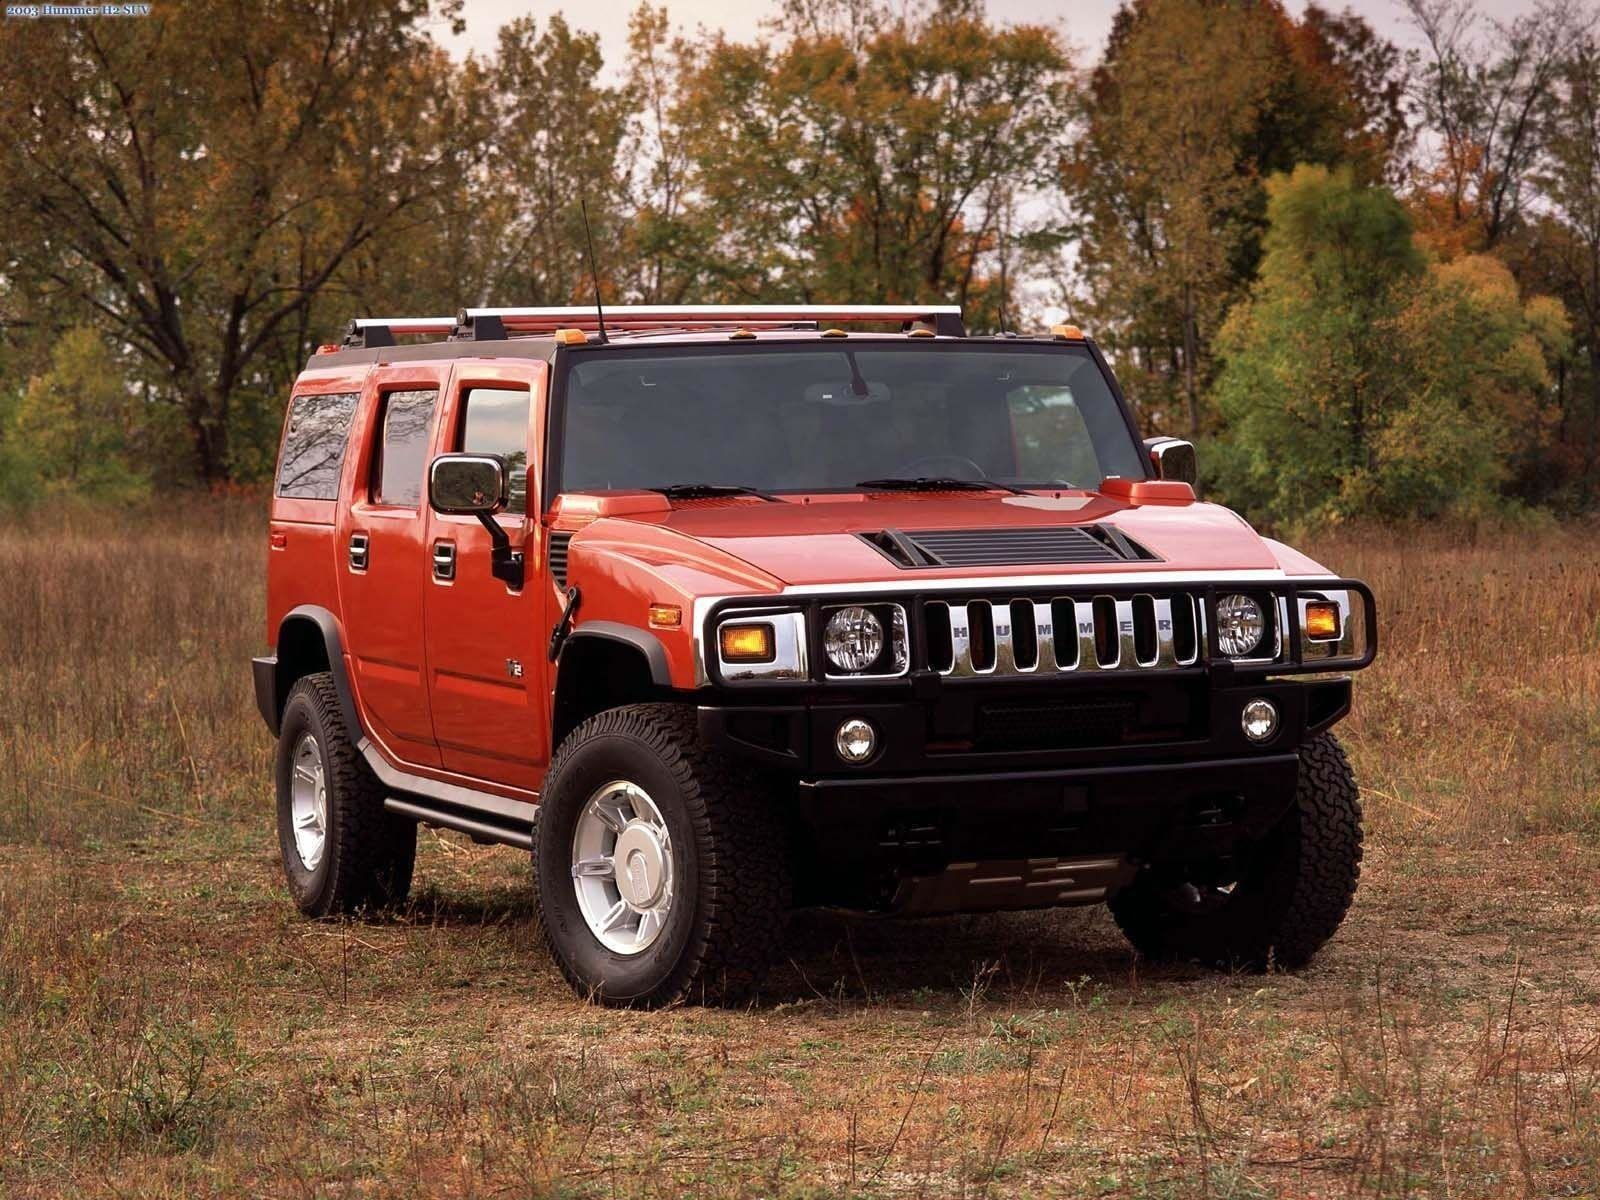 Latest Hummer Car Wallpapers 2017 Wallpaper Cave Free Download